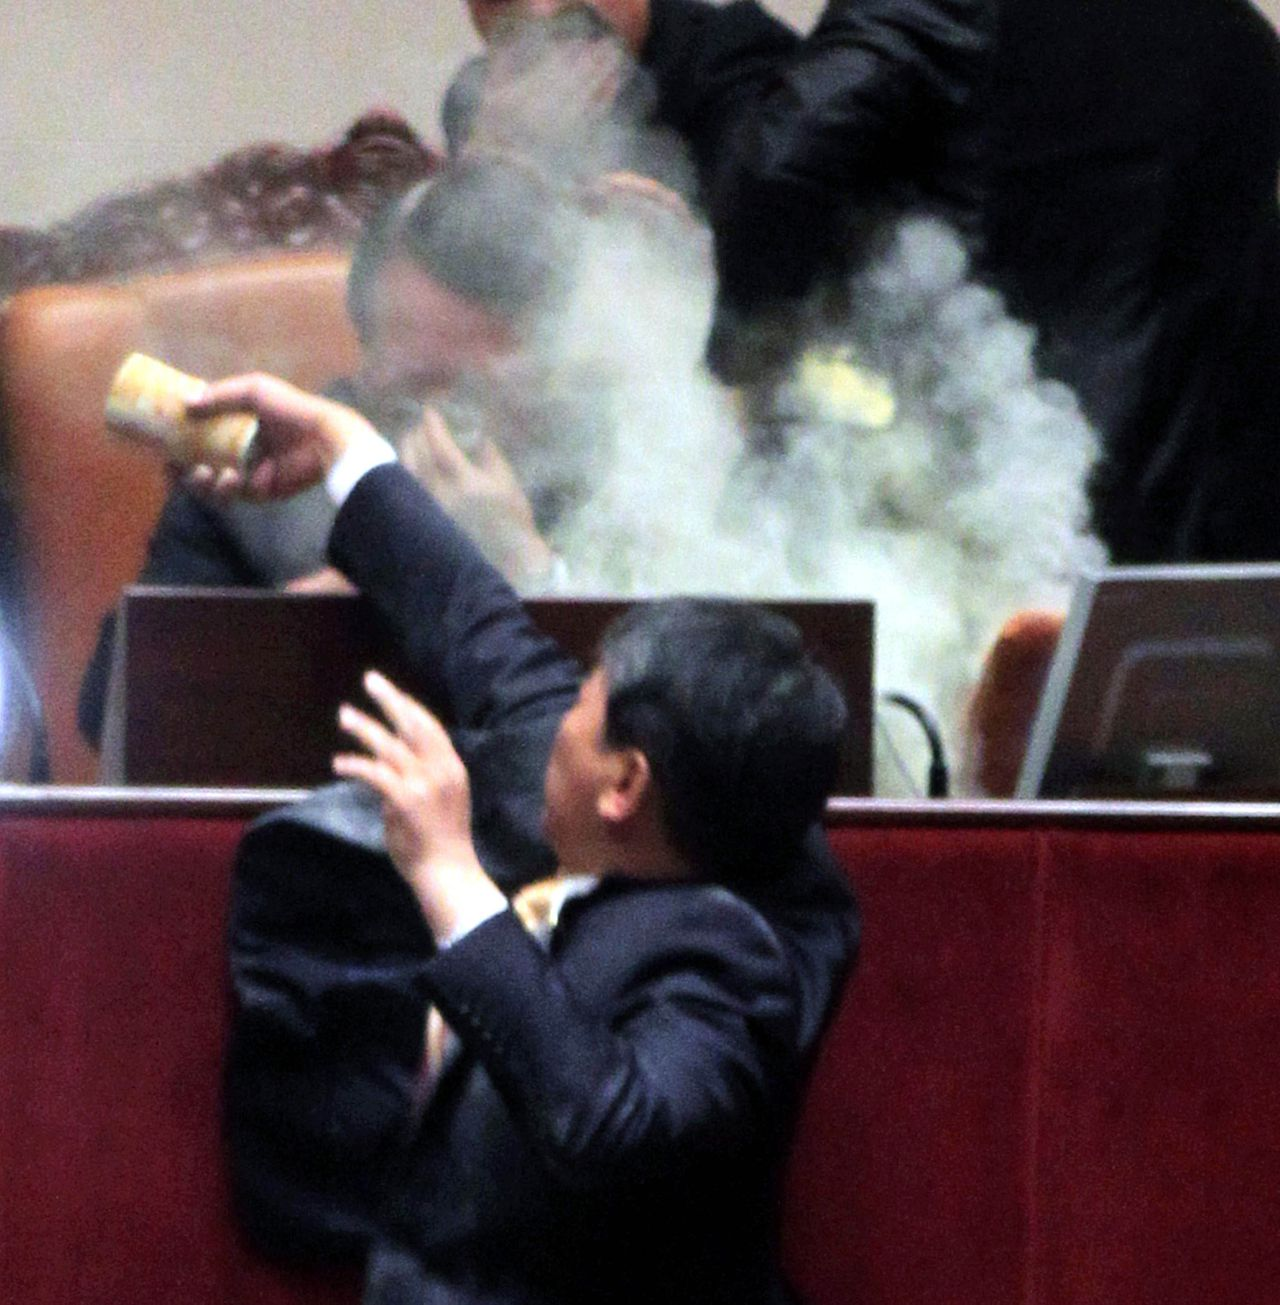 South Korean lawmaker Kim Sun-Dong (bottom) of the Democratic Labour Party detonates a tear gas canister towards the chairman's seat at the National Assembly in Seoul to try to stop the ruling Grand National Party's move to ratify a bill on a free trade agreement with the United States on November 22, 2011. South Korea's parliament approved a free trade agreement with the United States in a chaotic session, minutes after the opposition legislator set off a tear gas canister in protest at the pact. REPUBLIC OF KOREA OUT AFP PHOTO / NOCUT NEWS